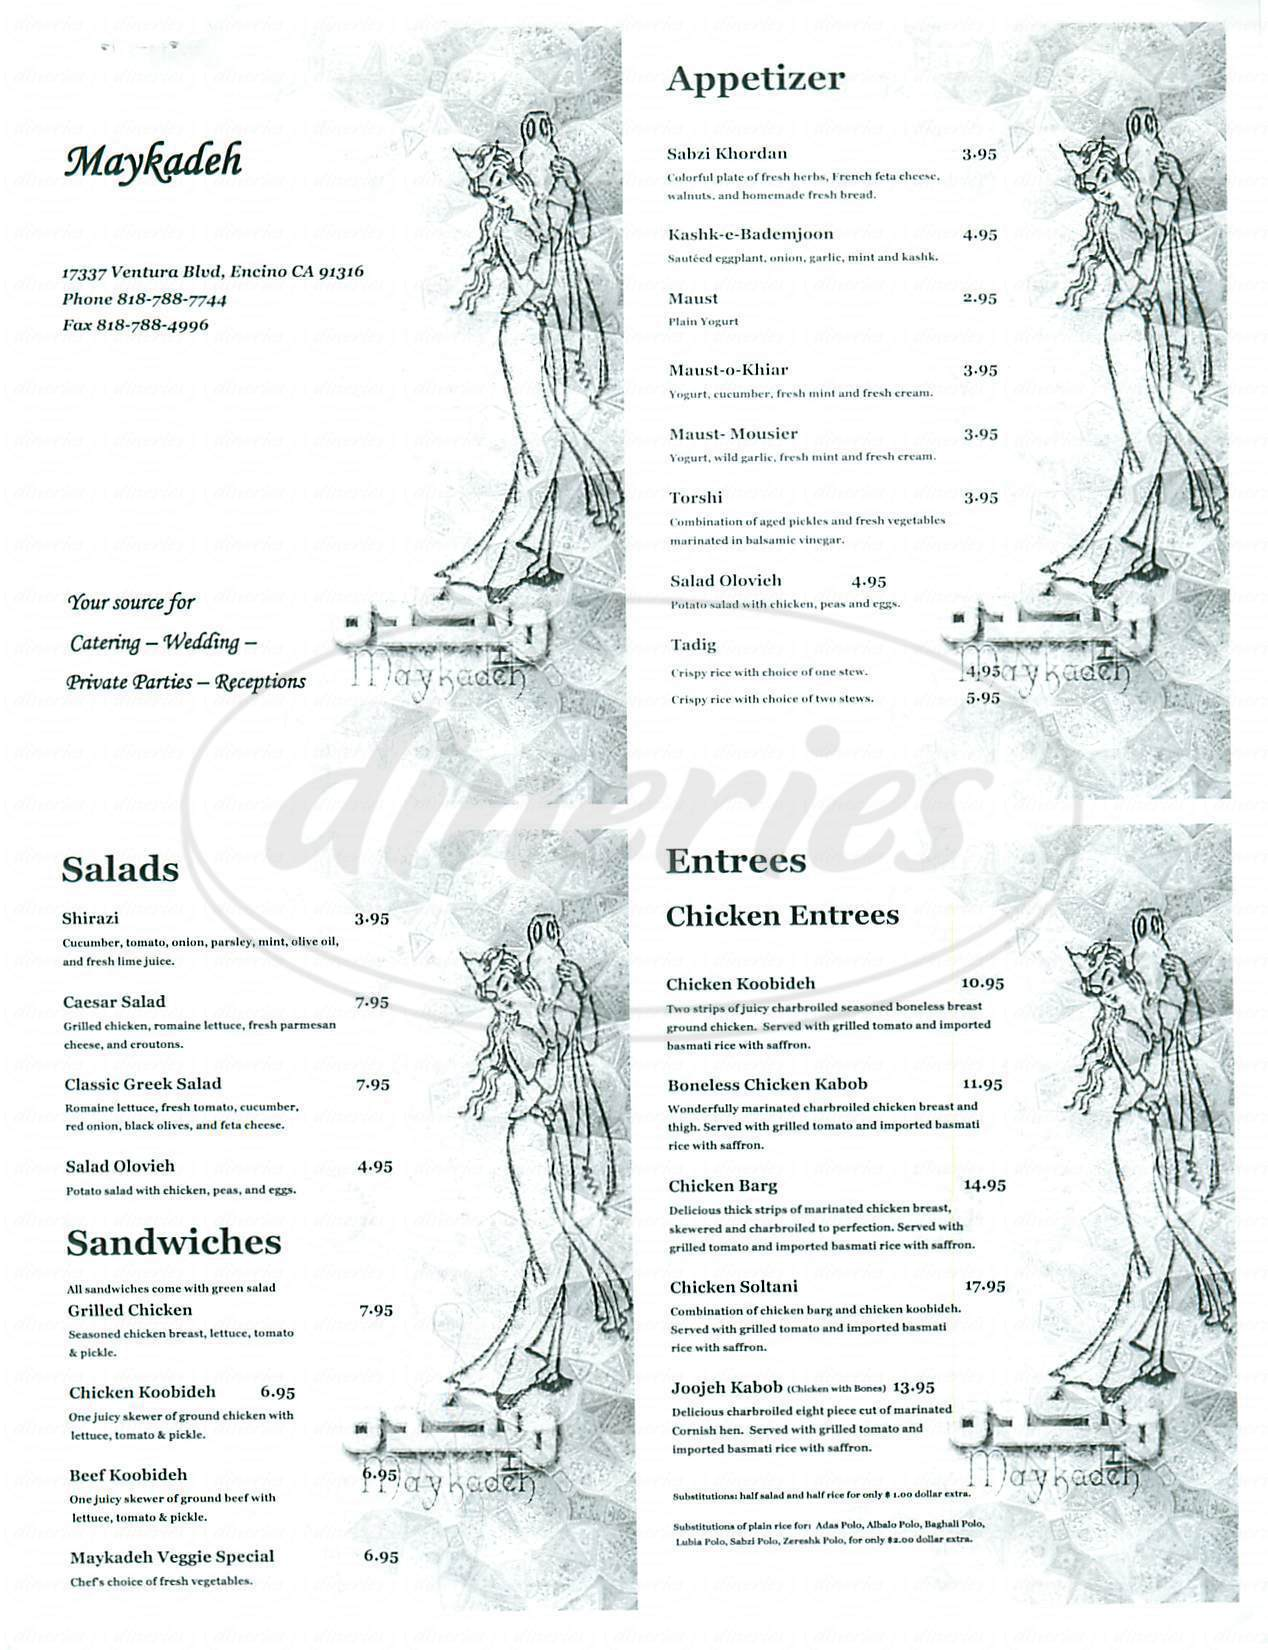 menu for Maykadeh